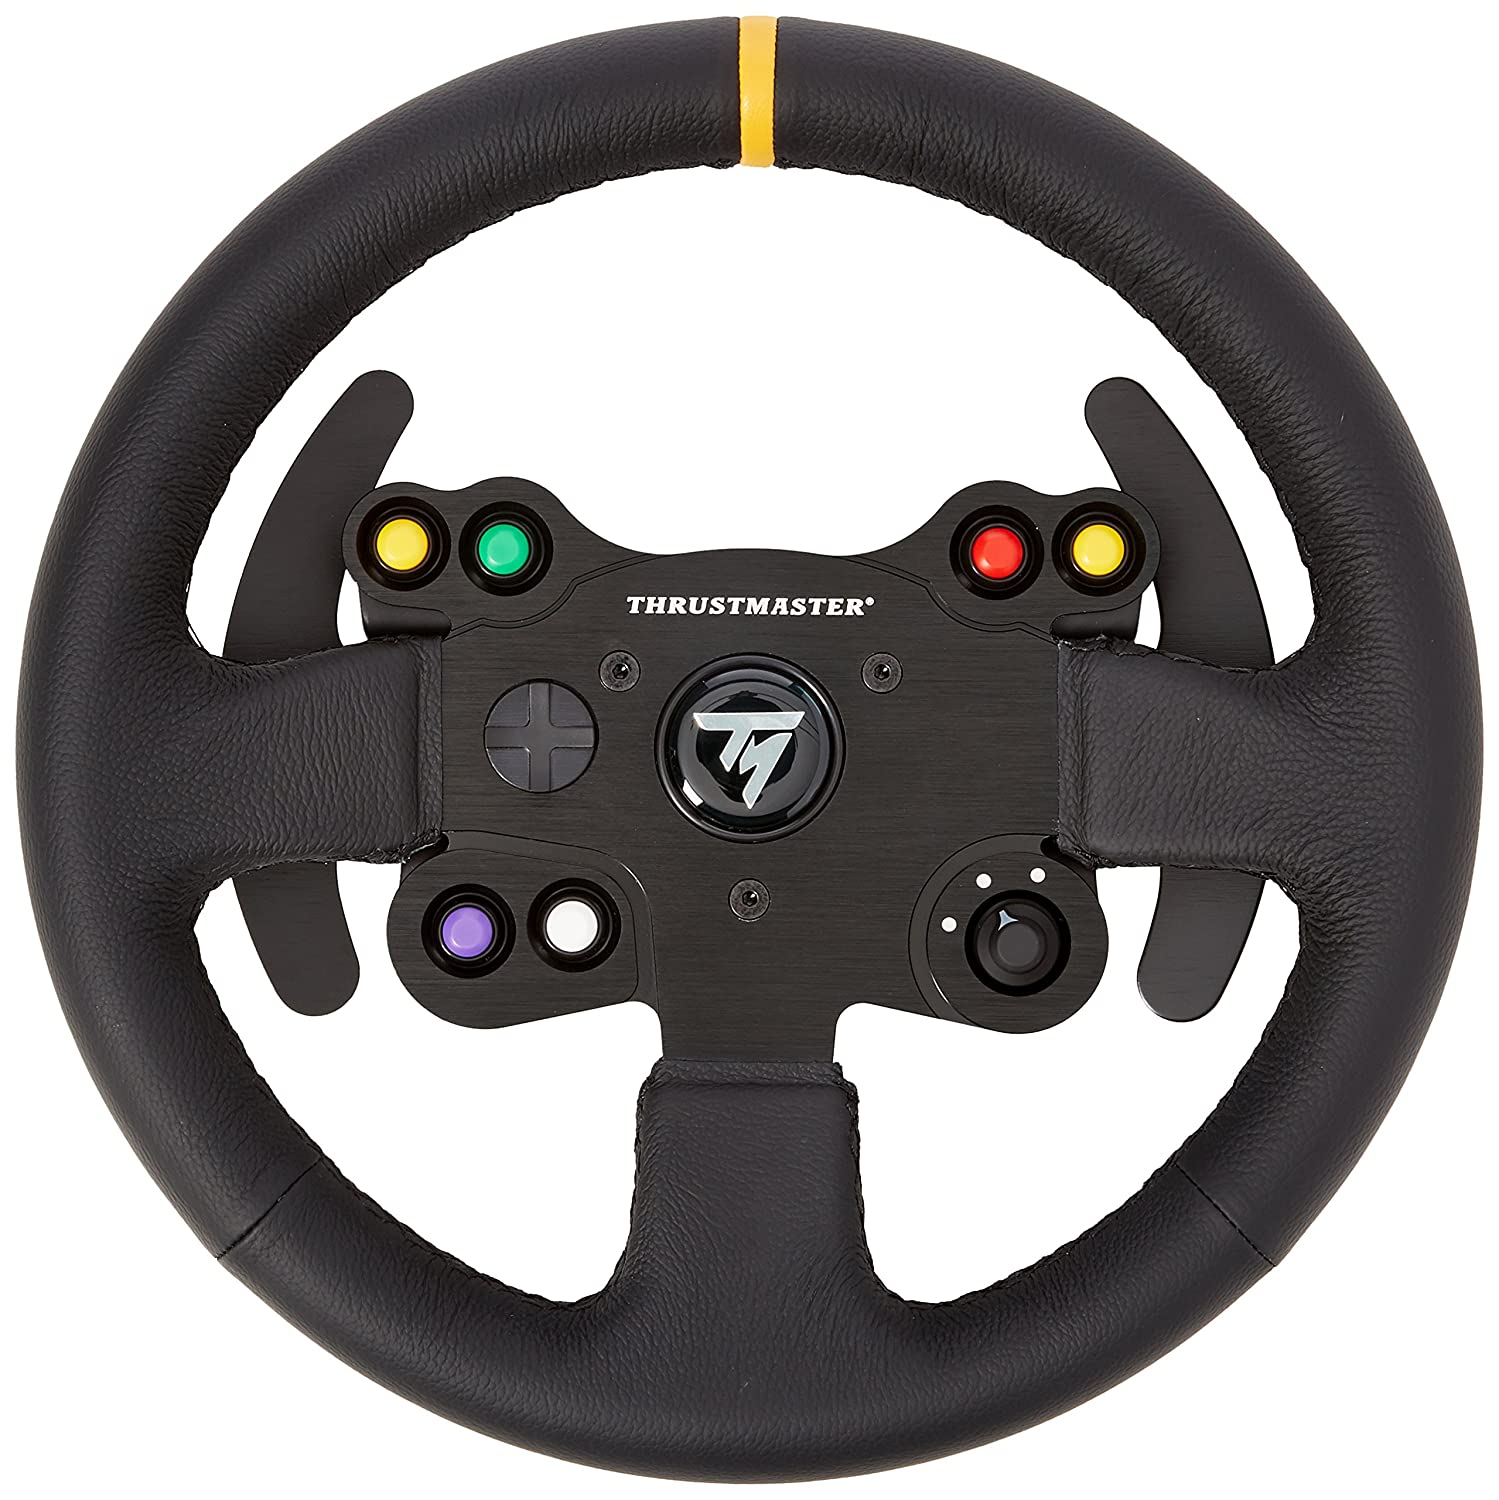 THRUSTMASTER TMST4060057 Tm Leather 28 Gt Wheel Add-On Leather 28 Gt Wheel Add-On Edition